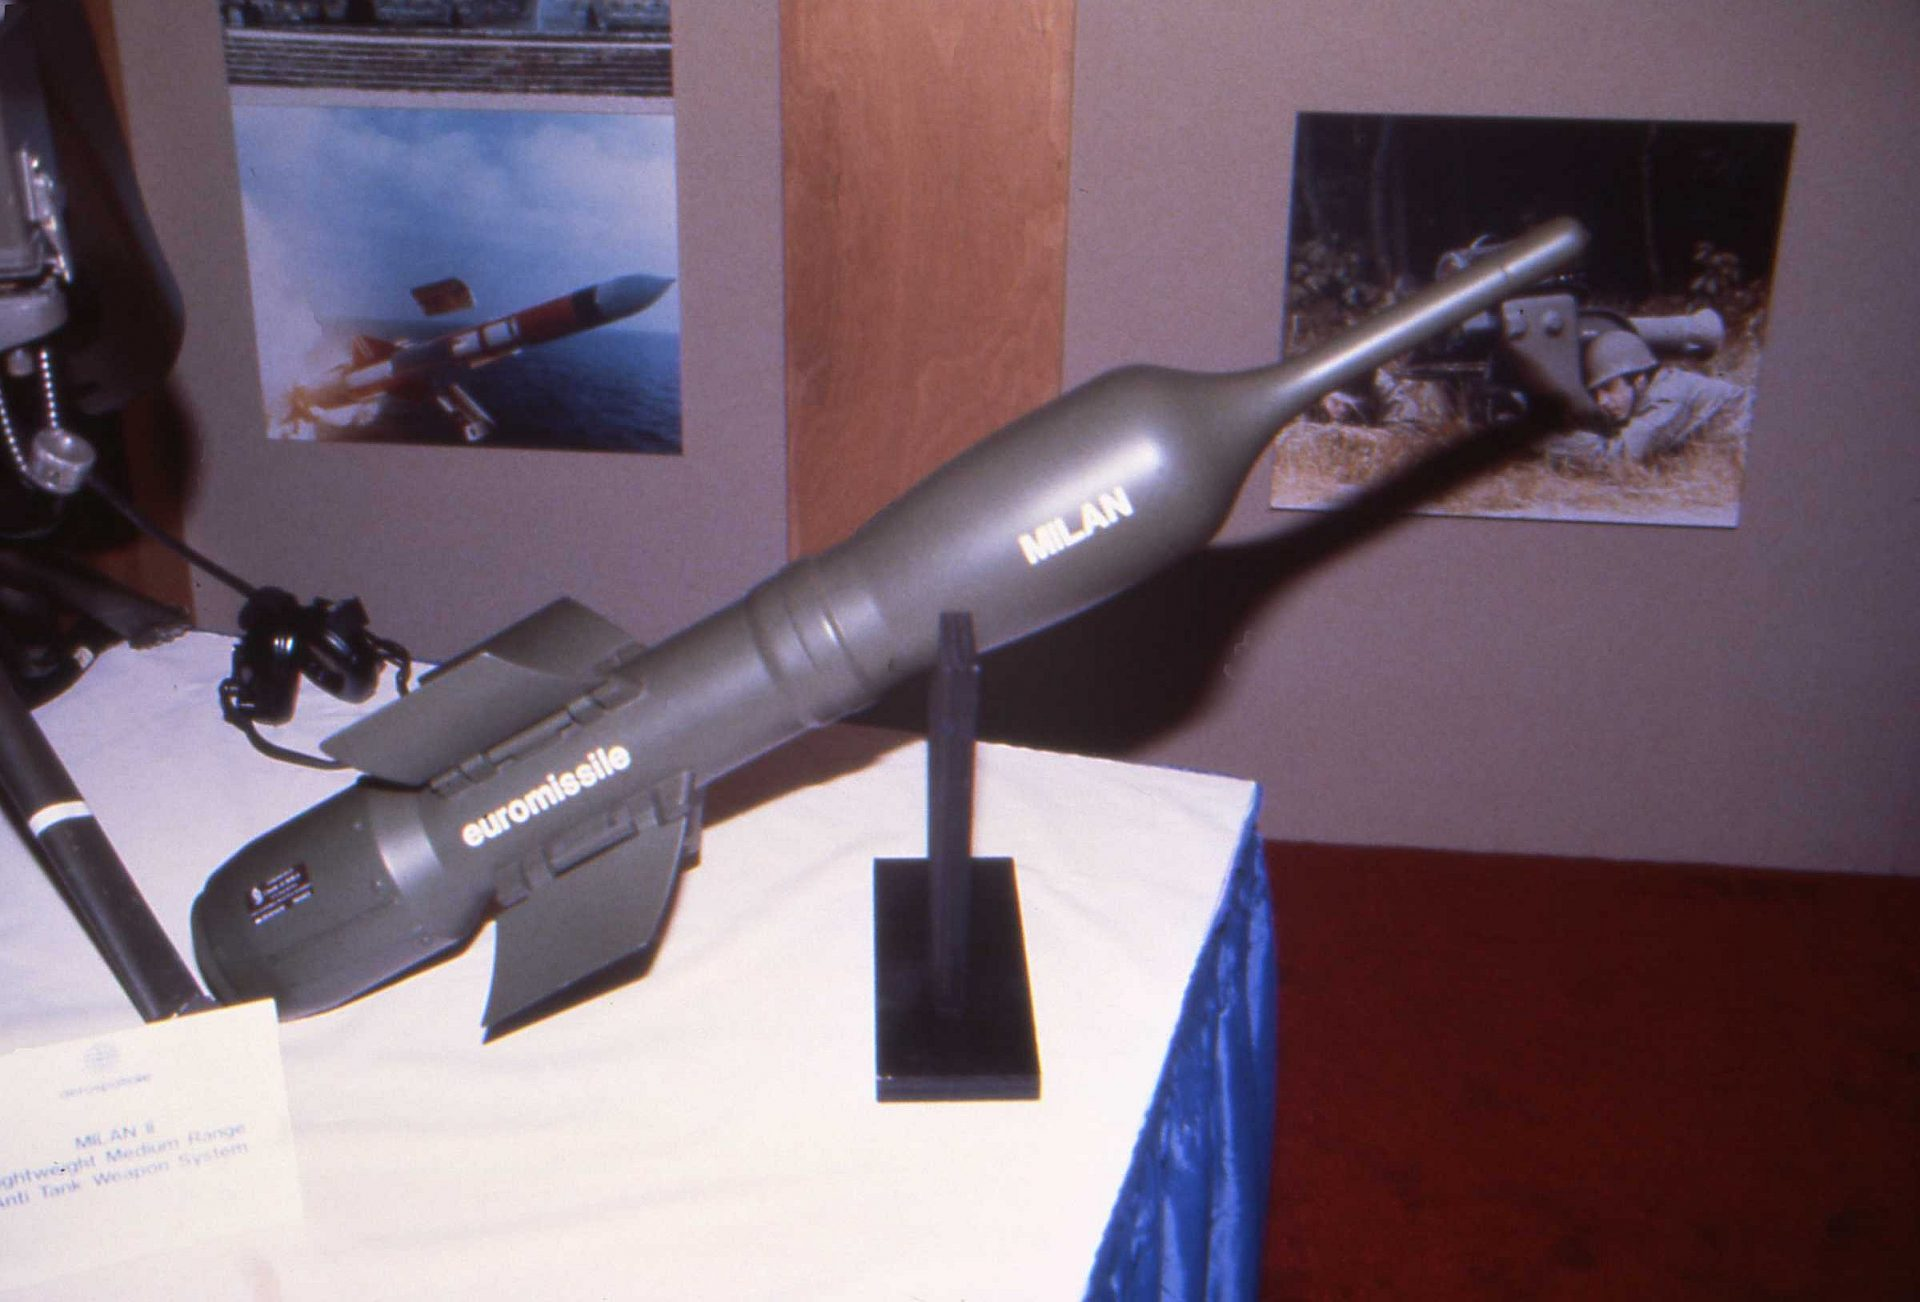 Major Boost To Indigenisation: Bharat Dynamics Inks Rs 1188 Crore Deal To Supply 4,960 Anti-Tank Guided Missiles To Army